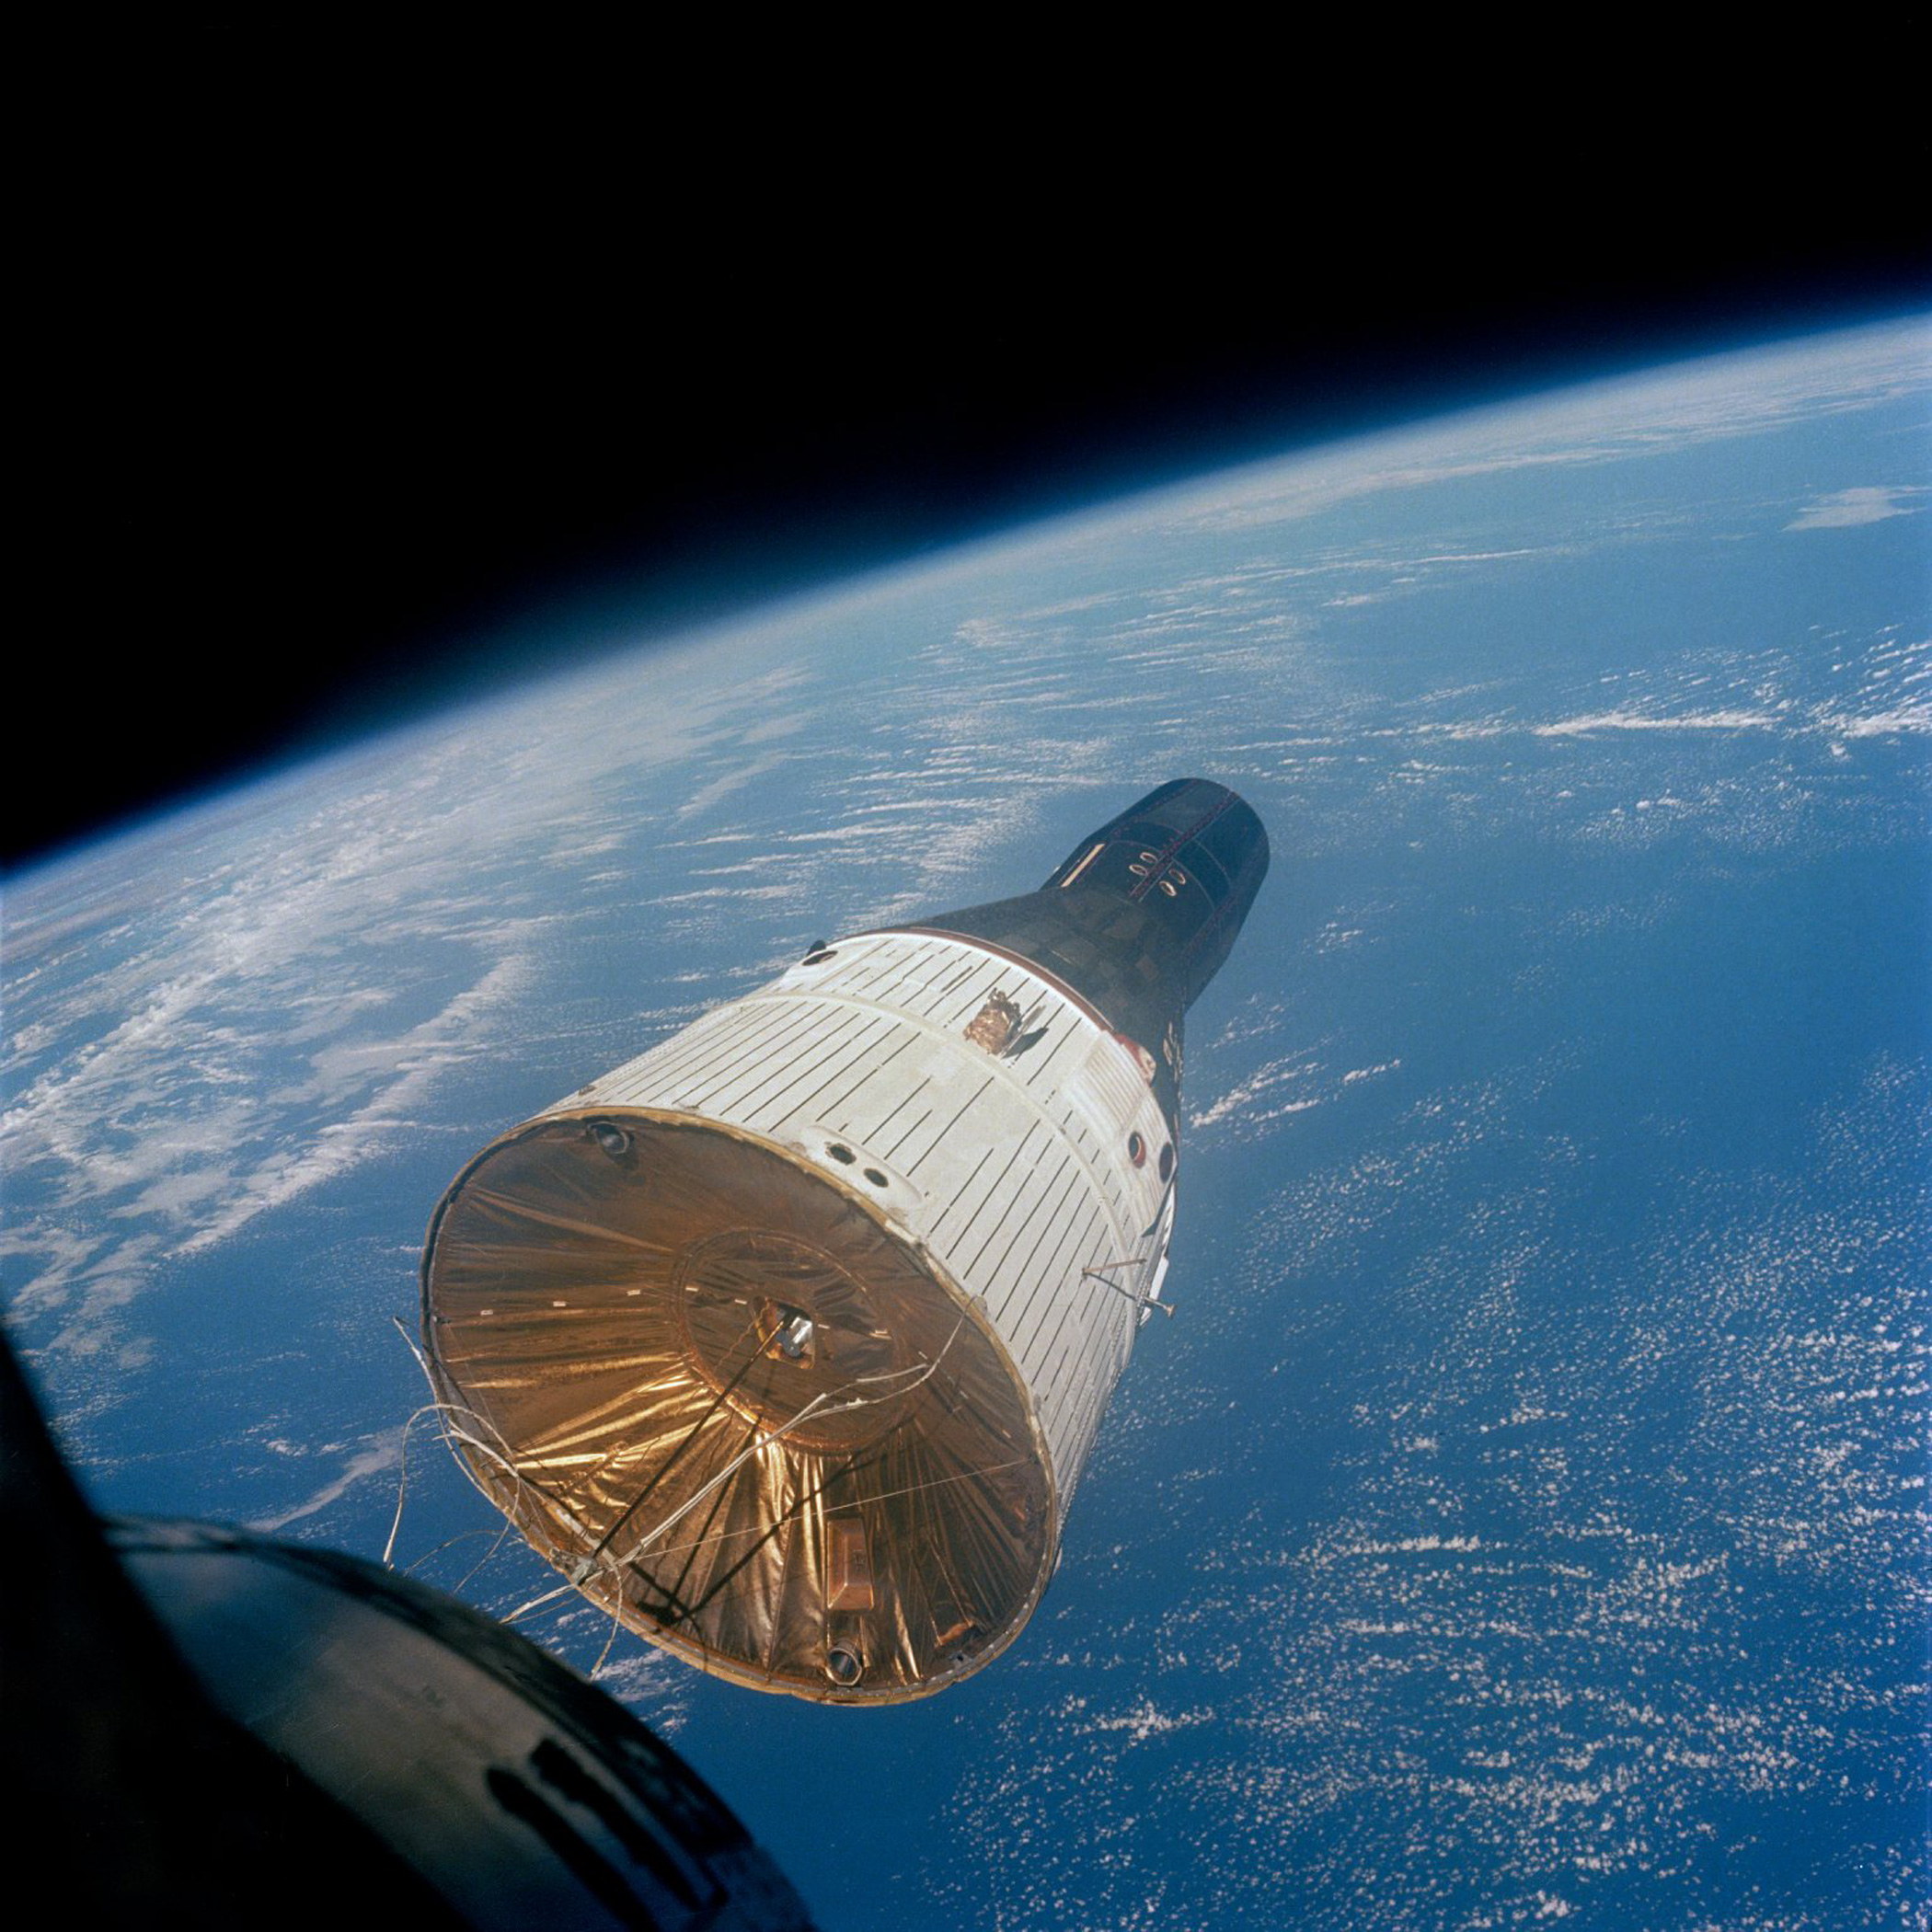 <b>Gemini 7, 1965</b>; Gemini 7 as seen from Gemini 6 during its in tandem space flight.